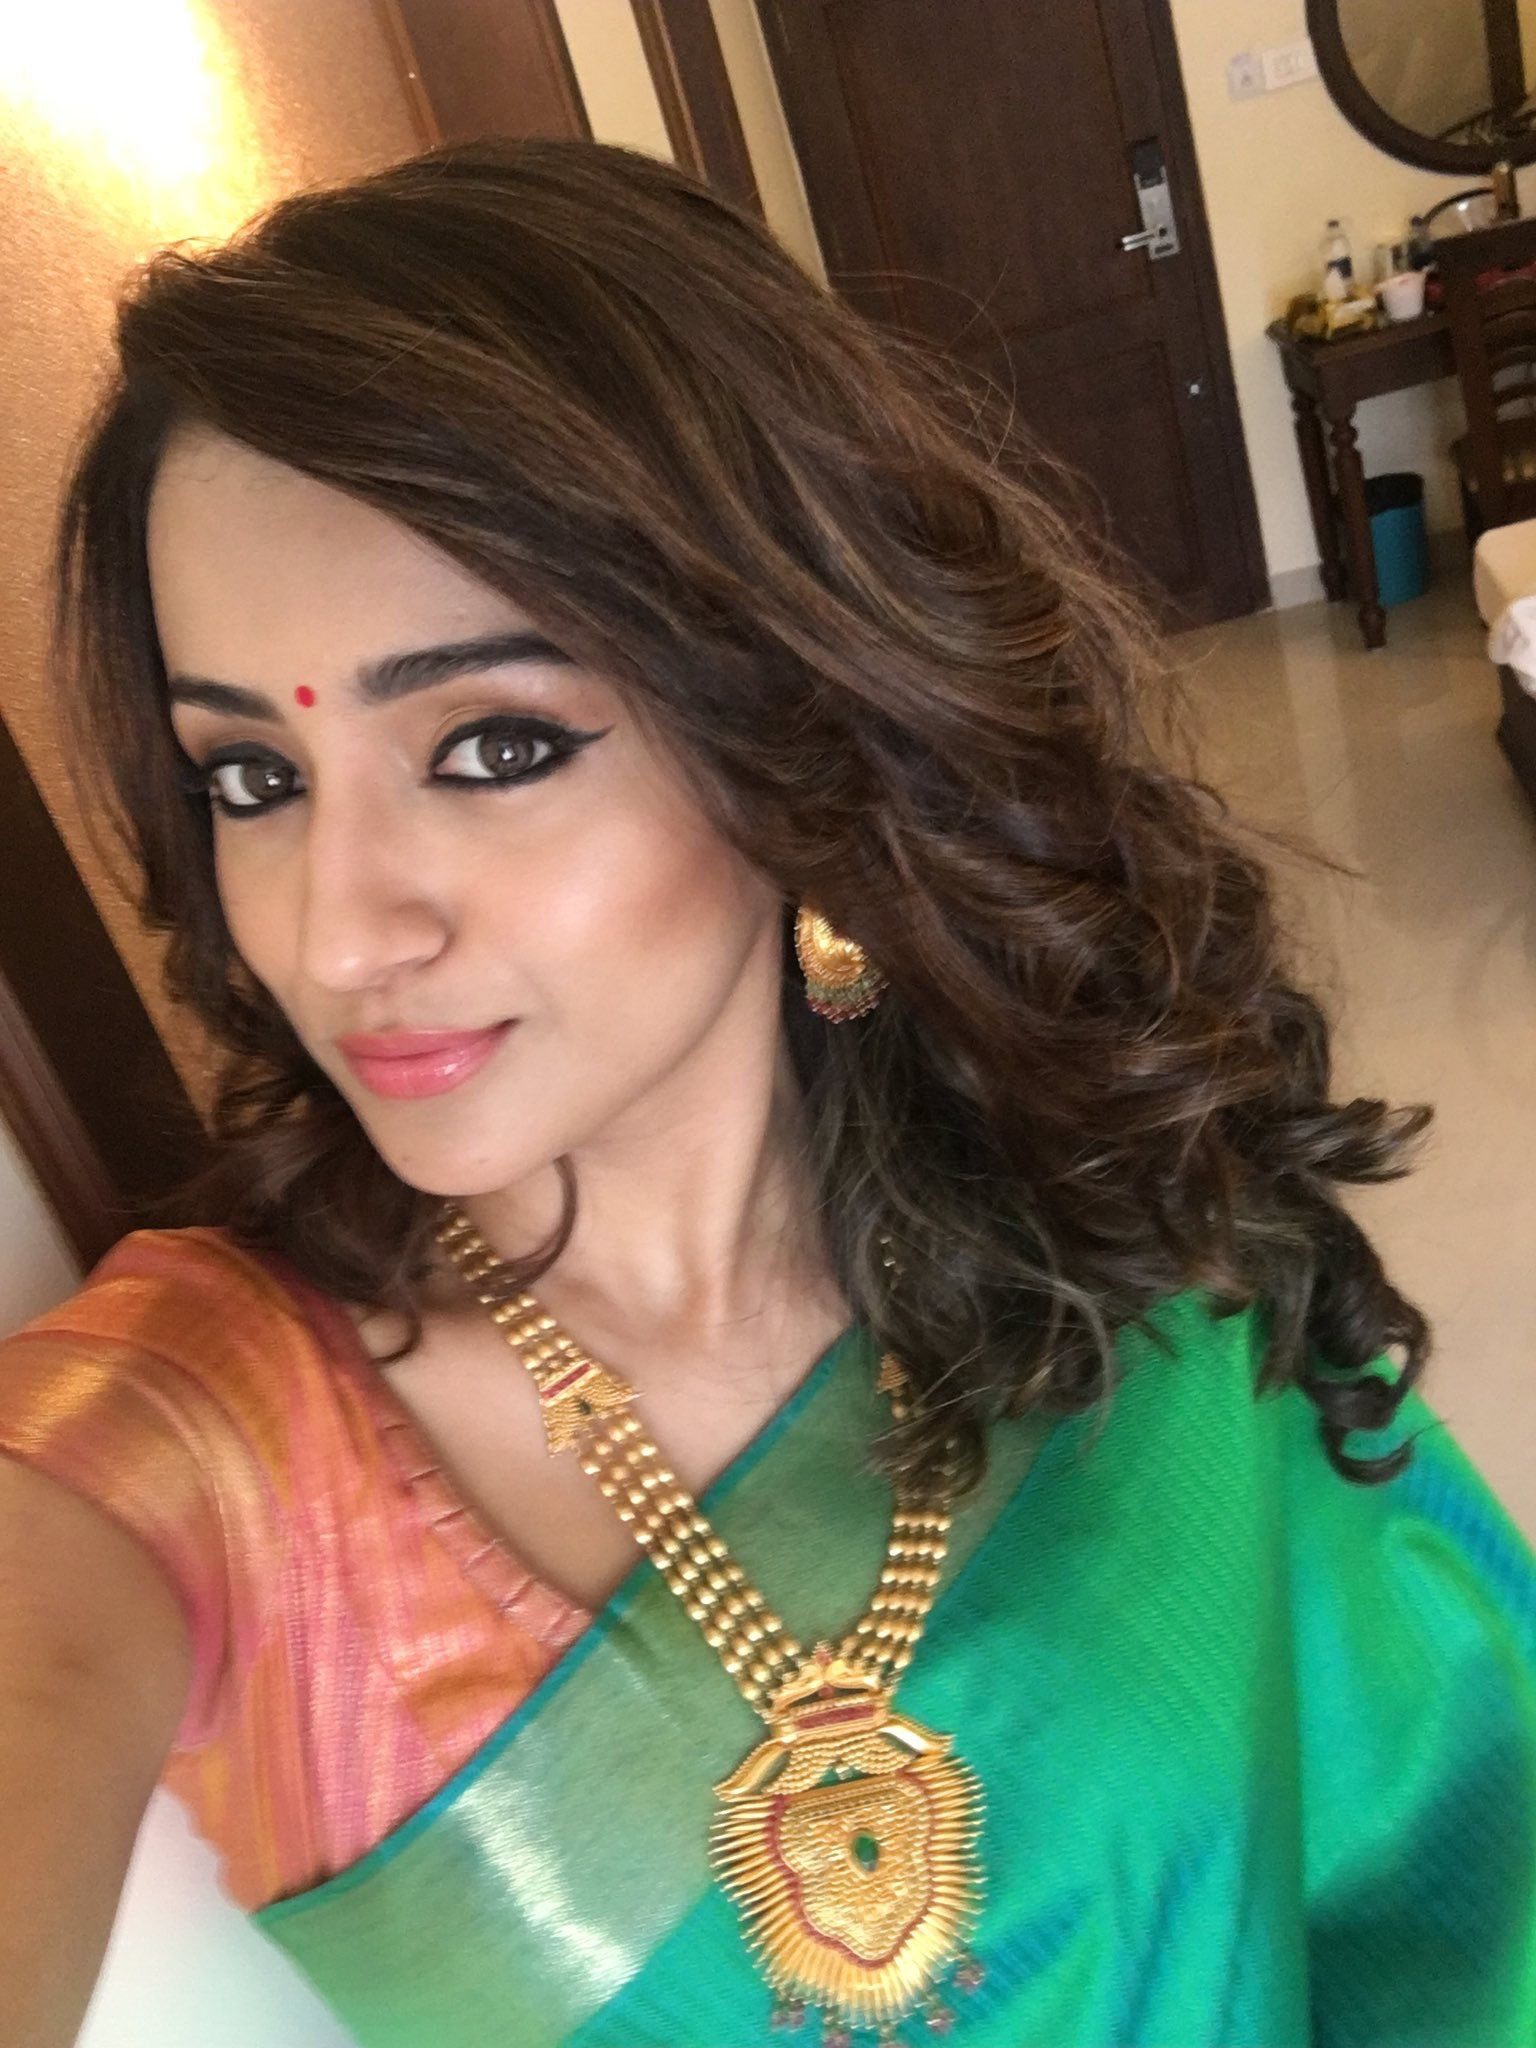 Ravishing Trisha. More fa4d2f57435